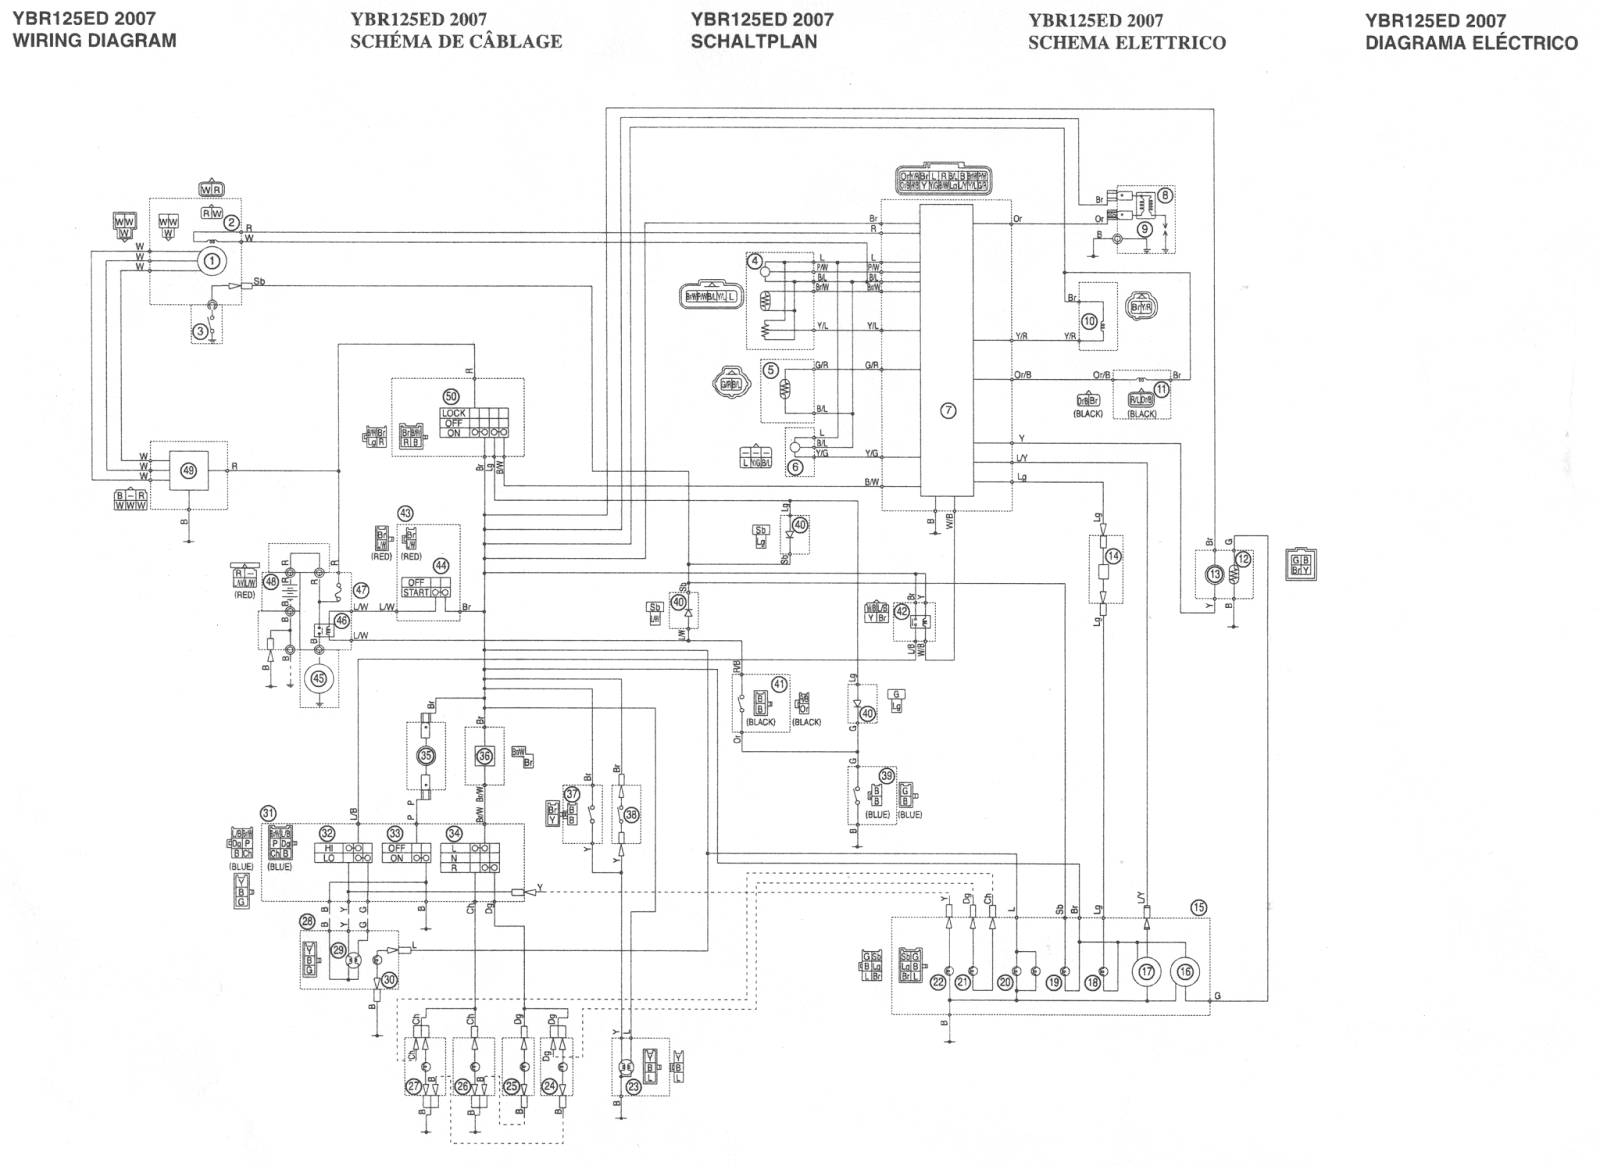 schema yamaha ybr 125 owner blog yamaha ybr 125 electrical system 1980 yamaha xt 250 wiring diagram at bakdesigns.co